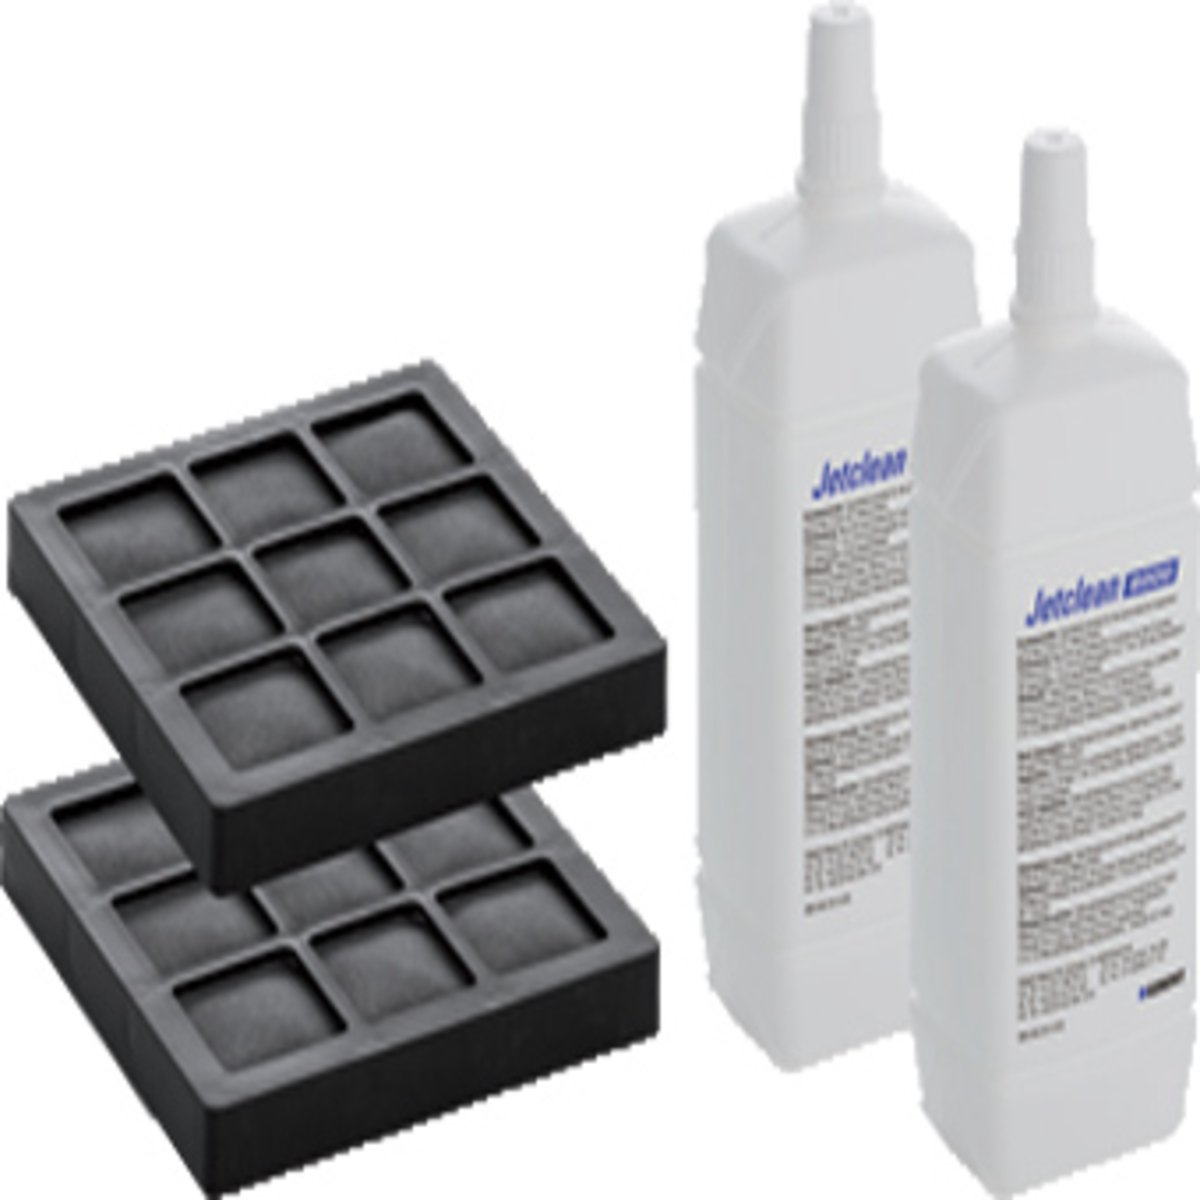 geberit aquaclean set van 2 koolfilters en 2 douchearm reinigingsmiddelen v 8000 8000 plus. Black Bedroom Furniture Sets. Home Design Ideas